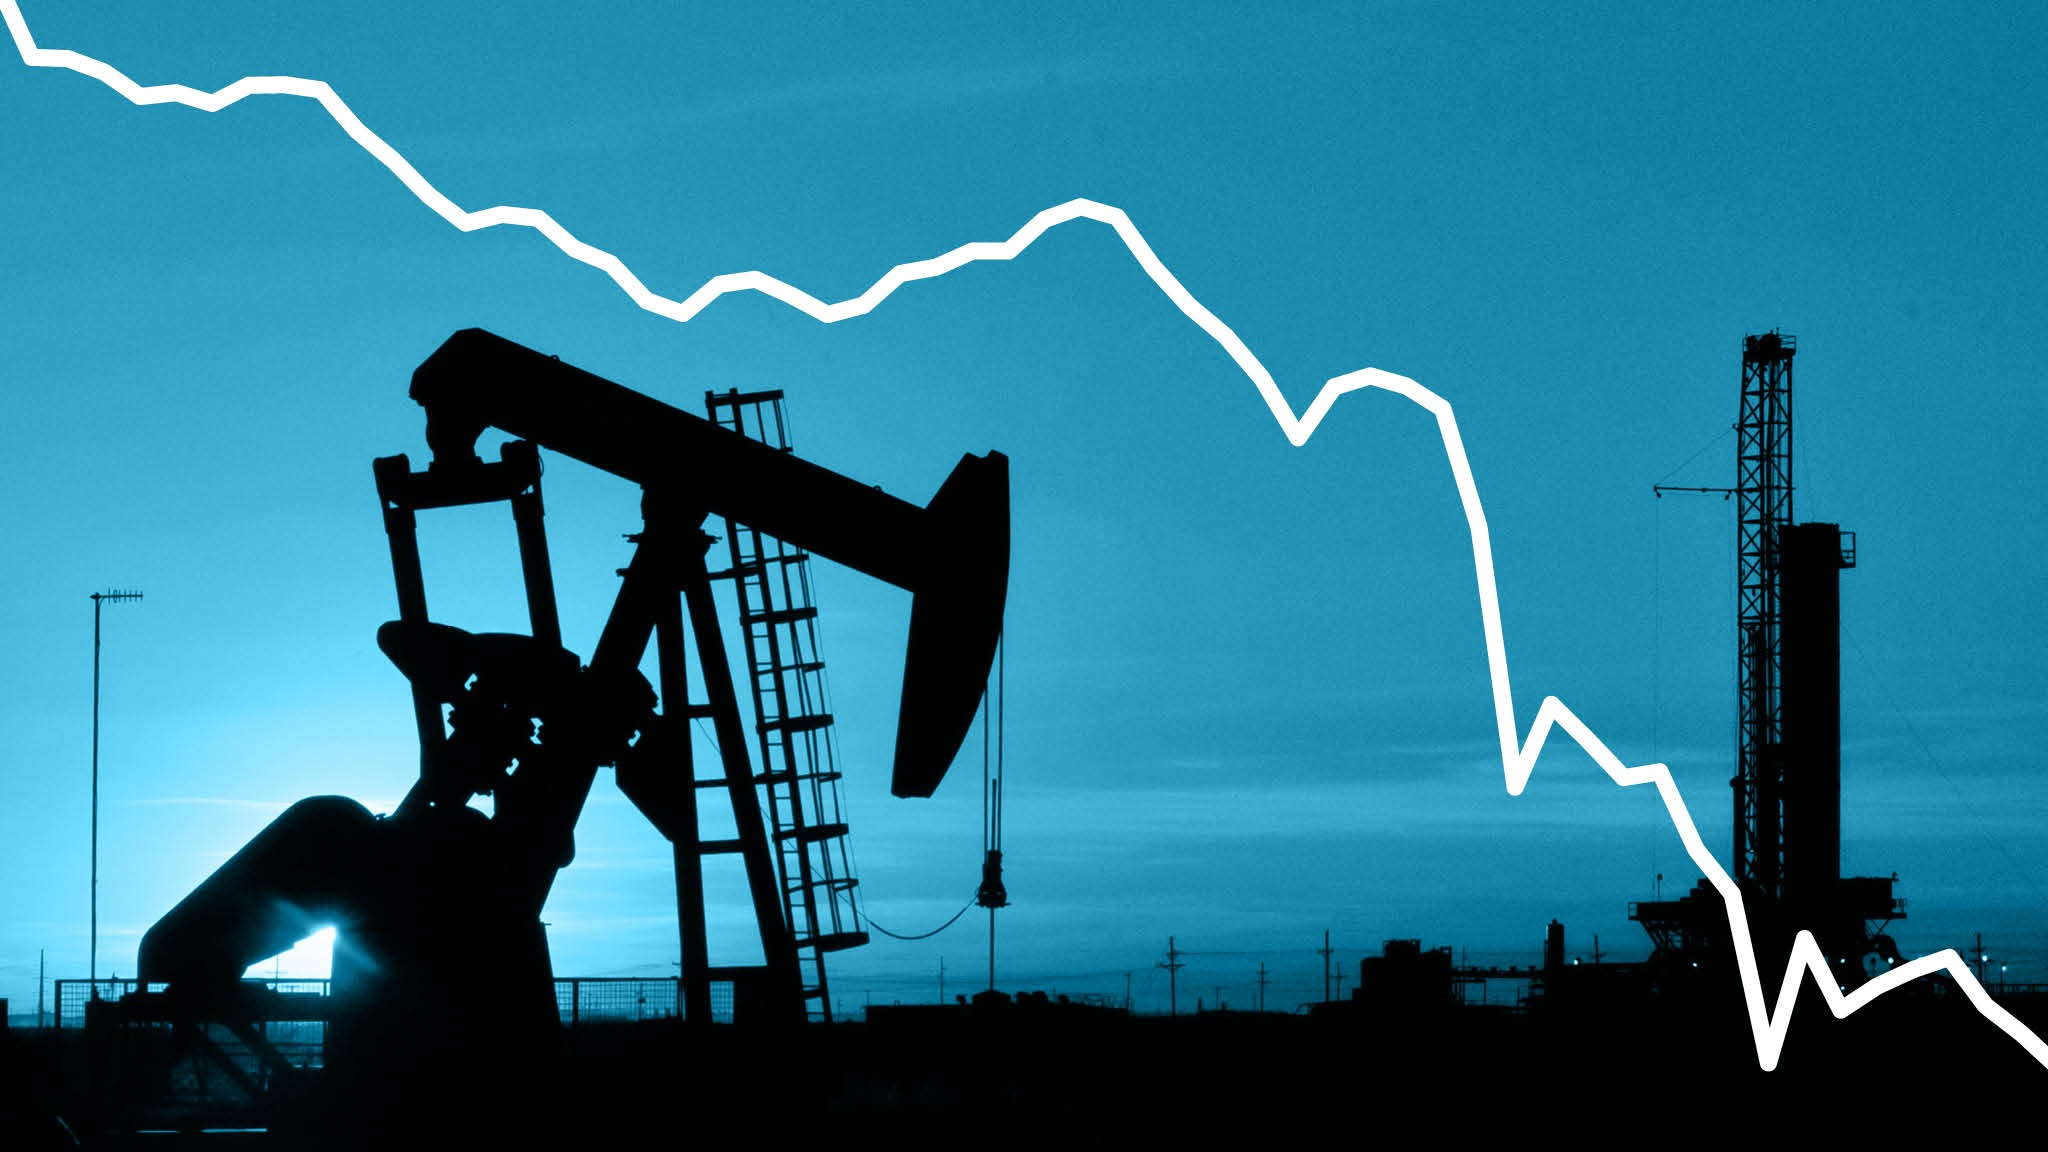 WWW.CRUDETARGET.COM 41,600 rs profit in crude oil yesterday. 99% sure. call 09898822096